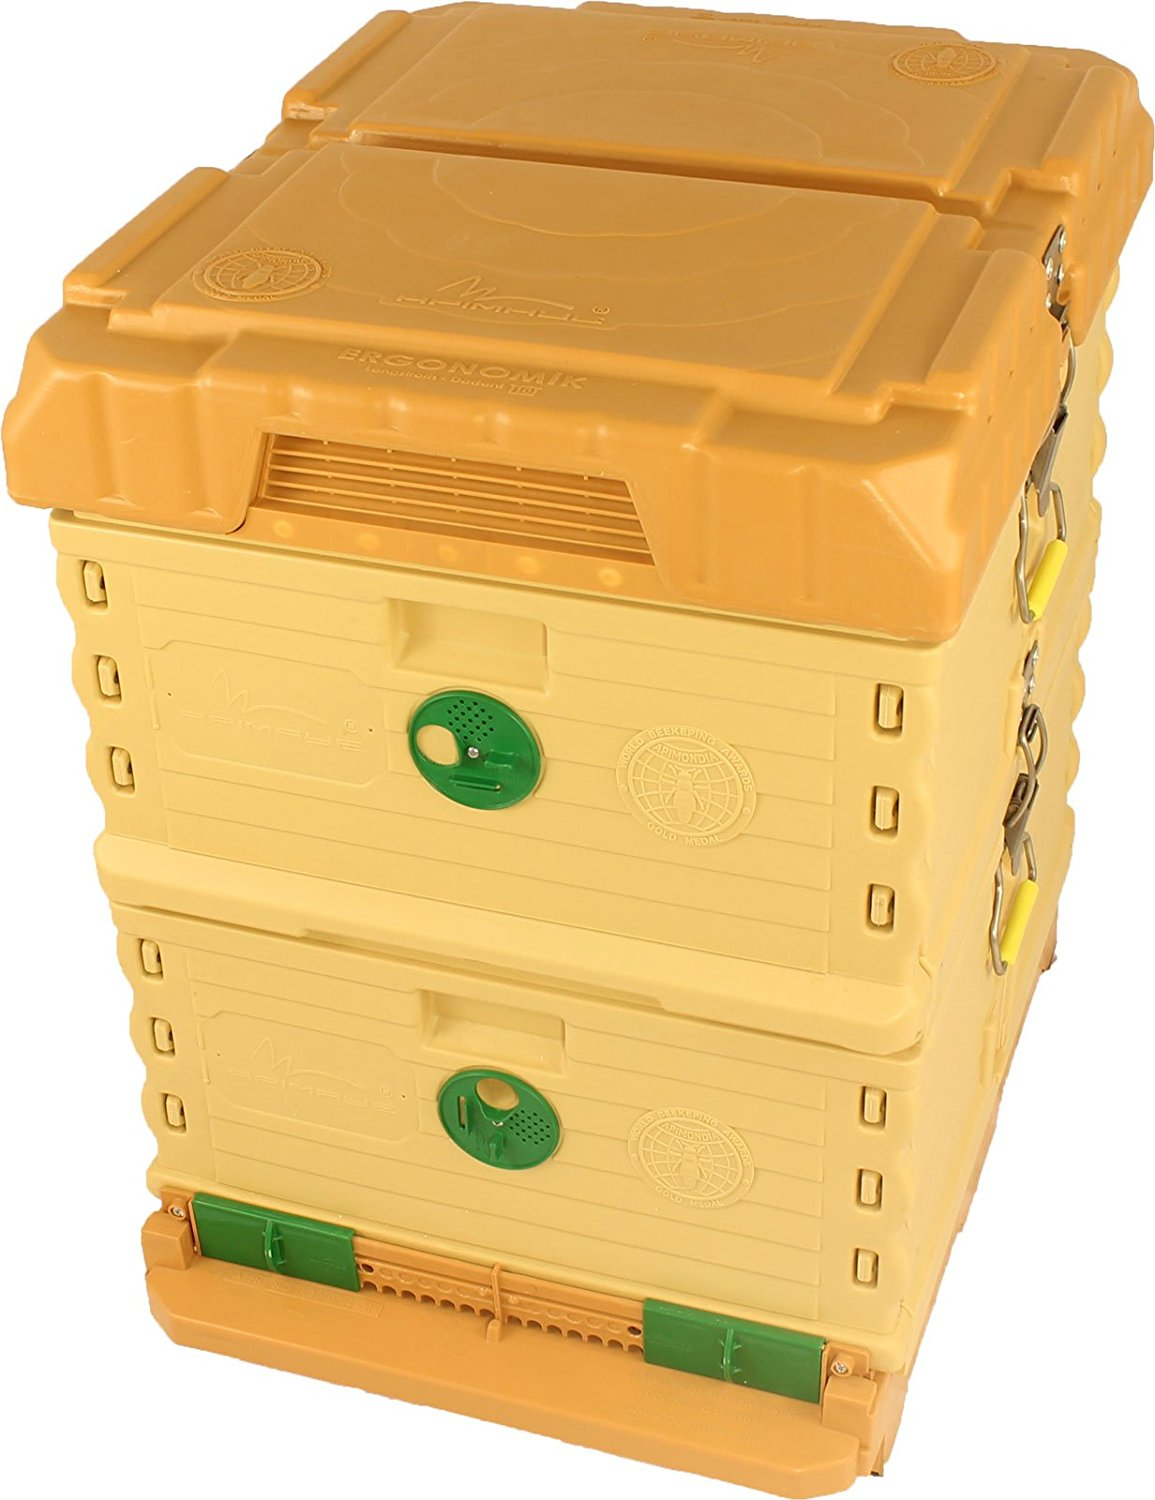 Apimaye Langstroth Insulated Hive Set